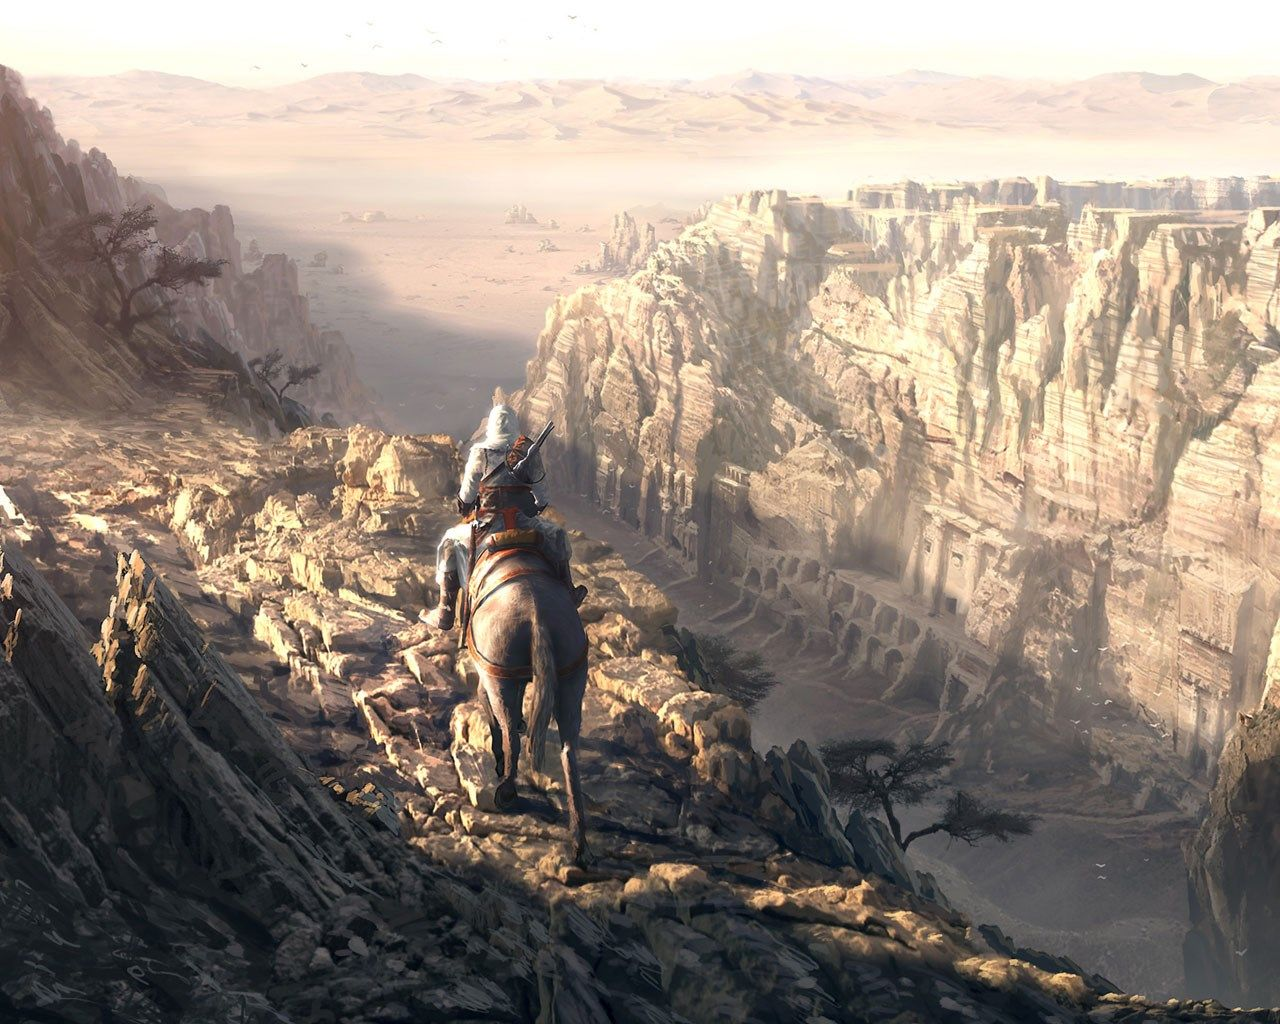 Must see Wallpaper Horse Assassin'S Creed - 58dc944c287287dbe328552d8f41492a  Graphic_289864.jpg